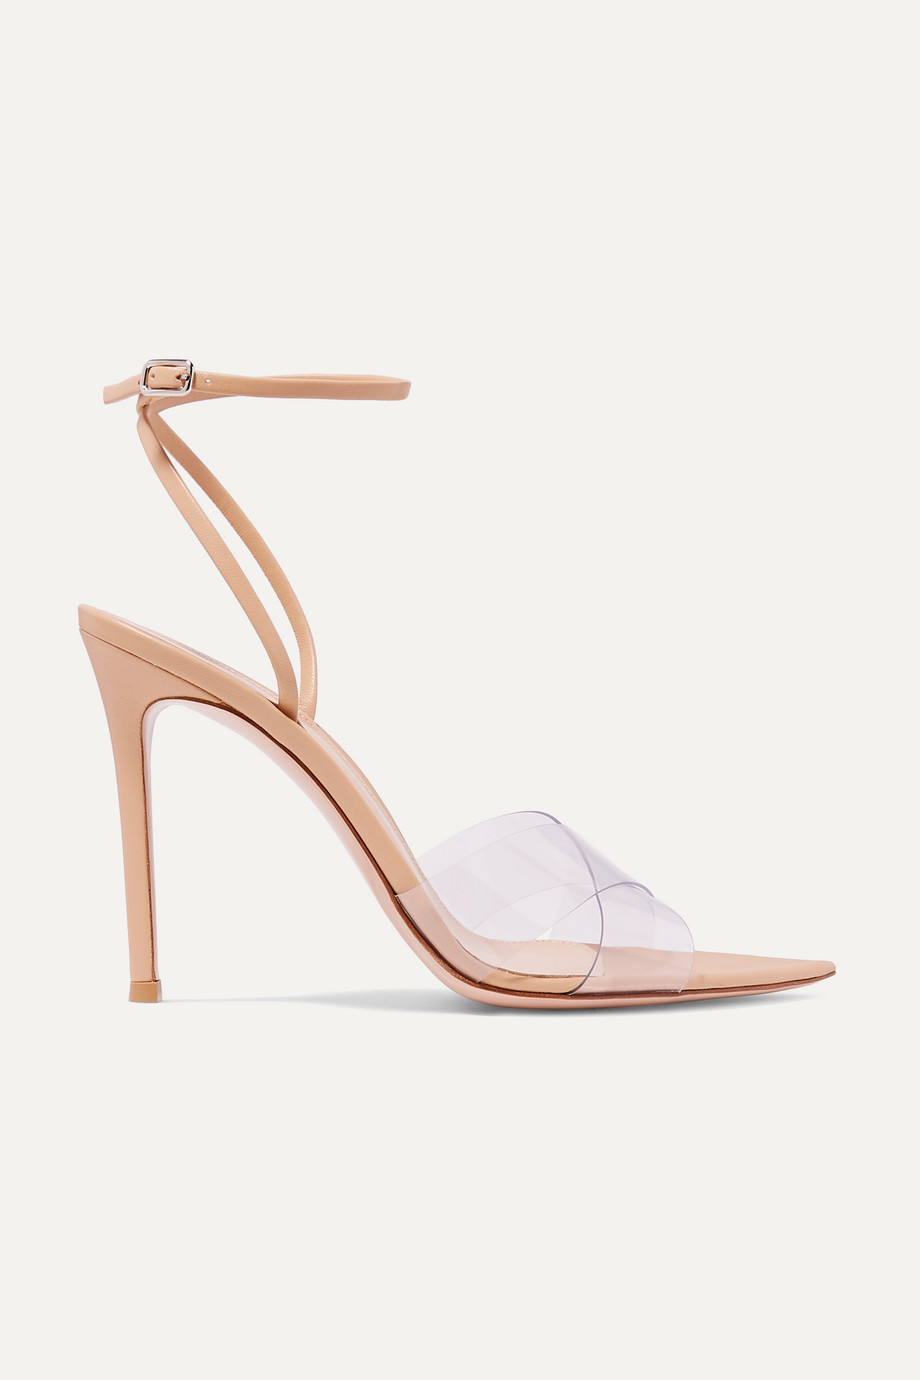 Exact Product: Stark 105 leather and PVC sandals, Brand: Gianvito Rossi, Available on: net-a-porter.com, Price: $556.5